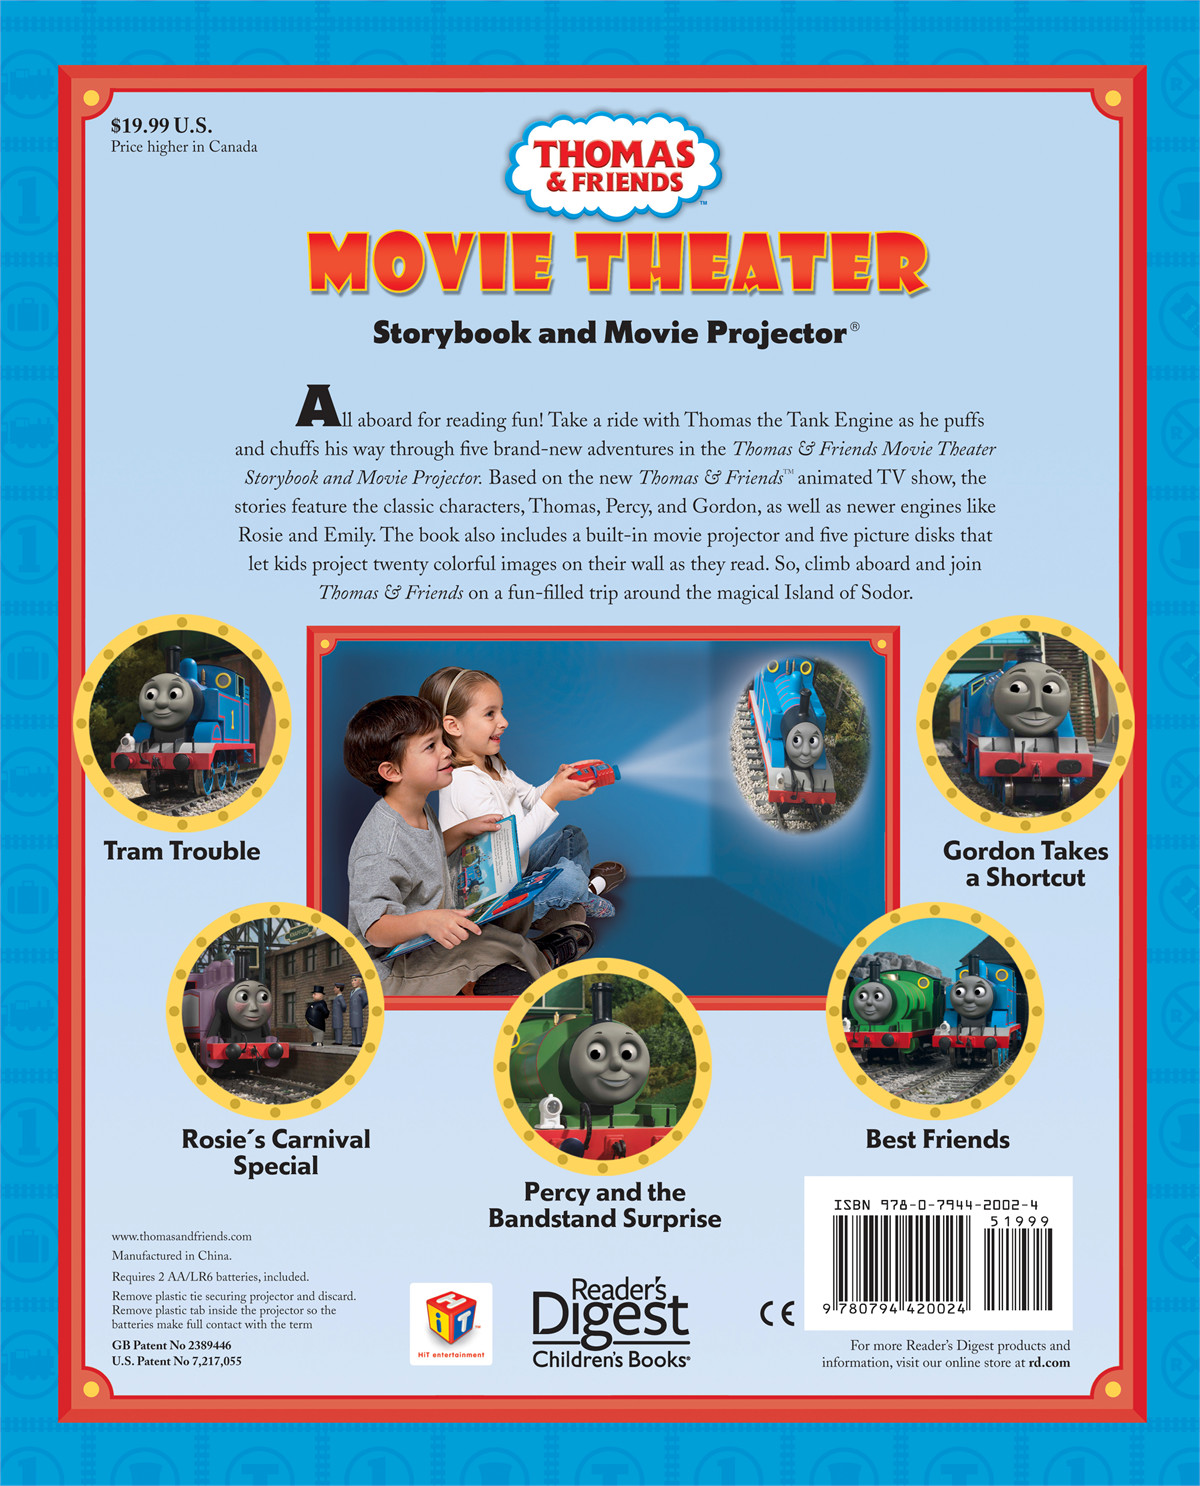 Thomas-friends-movie-theater-9780794420024.in01